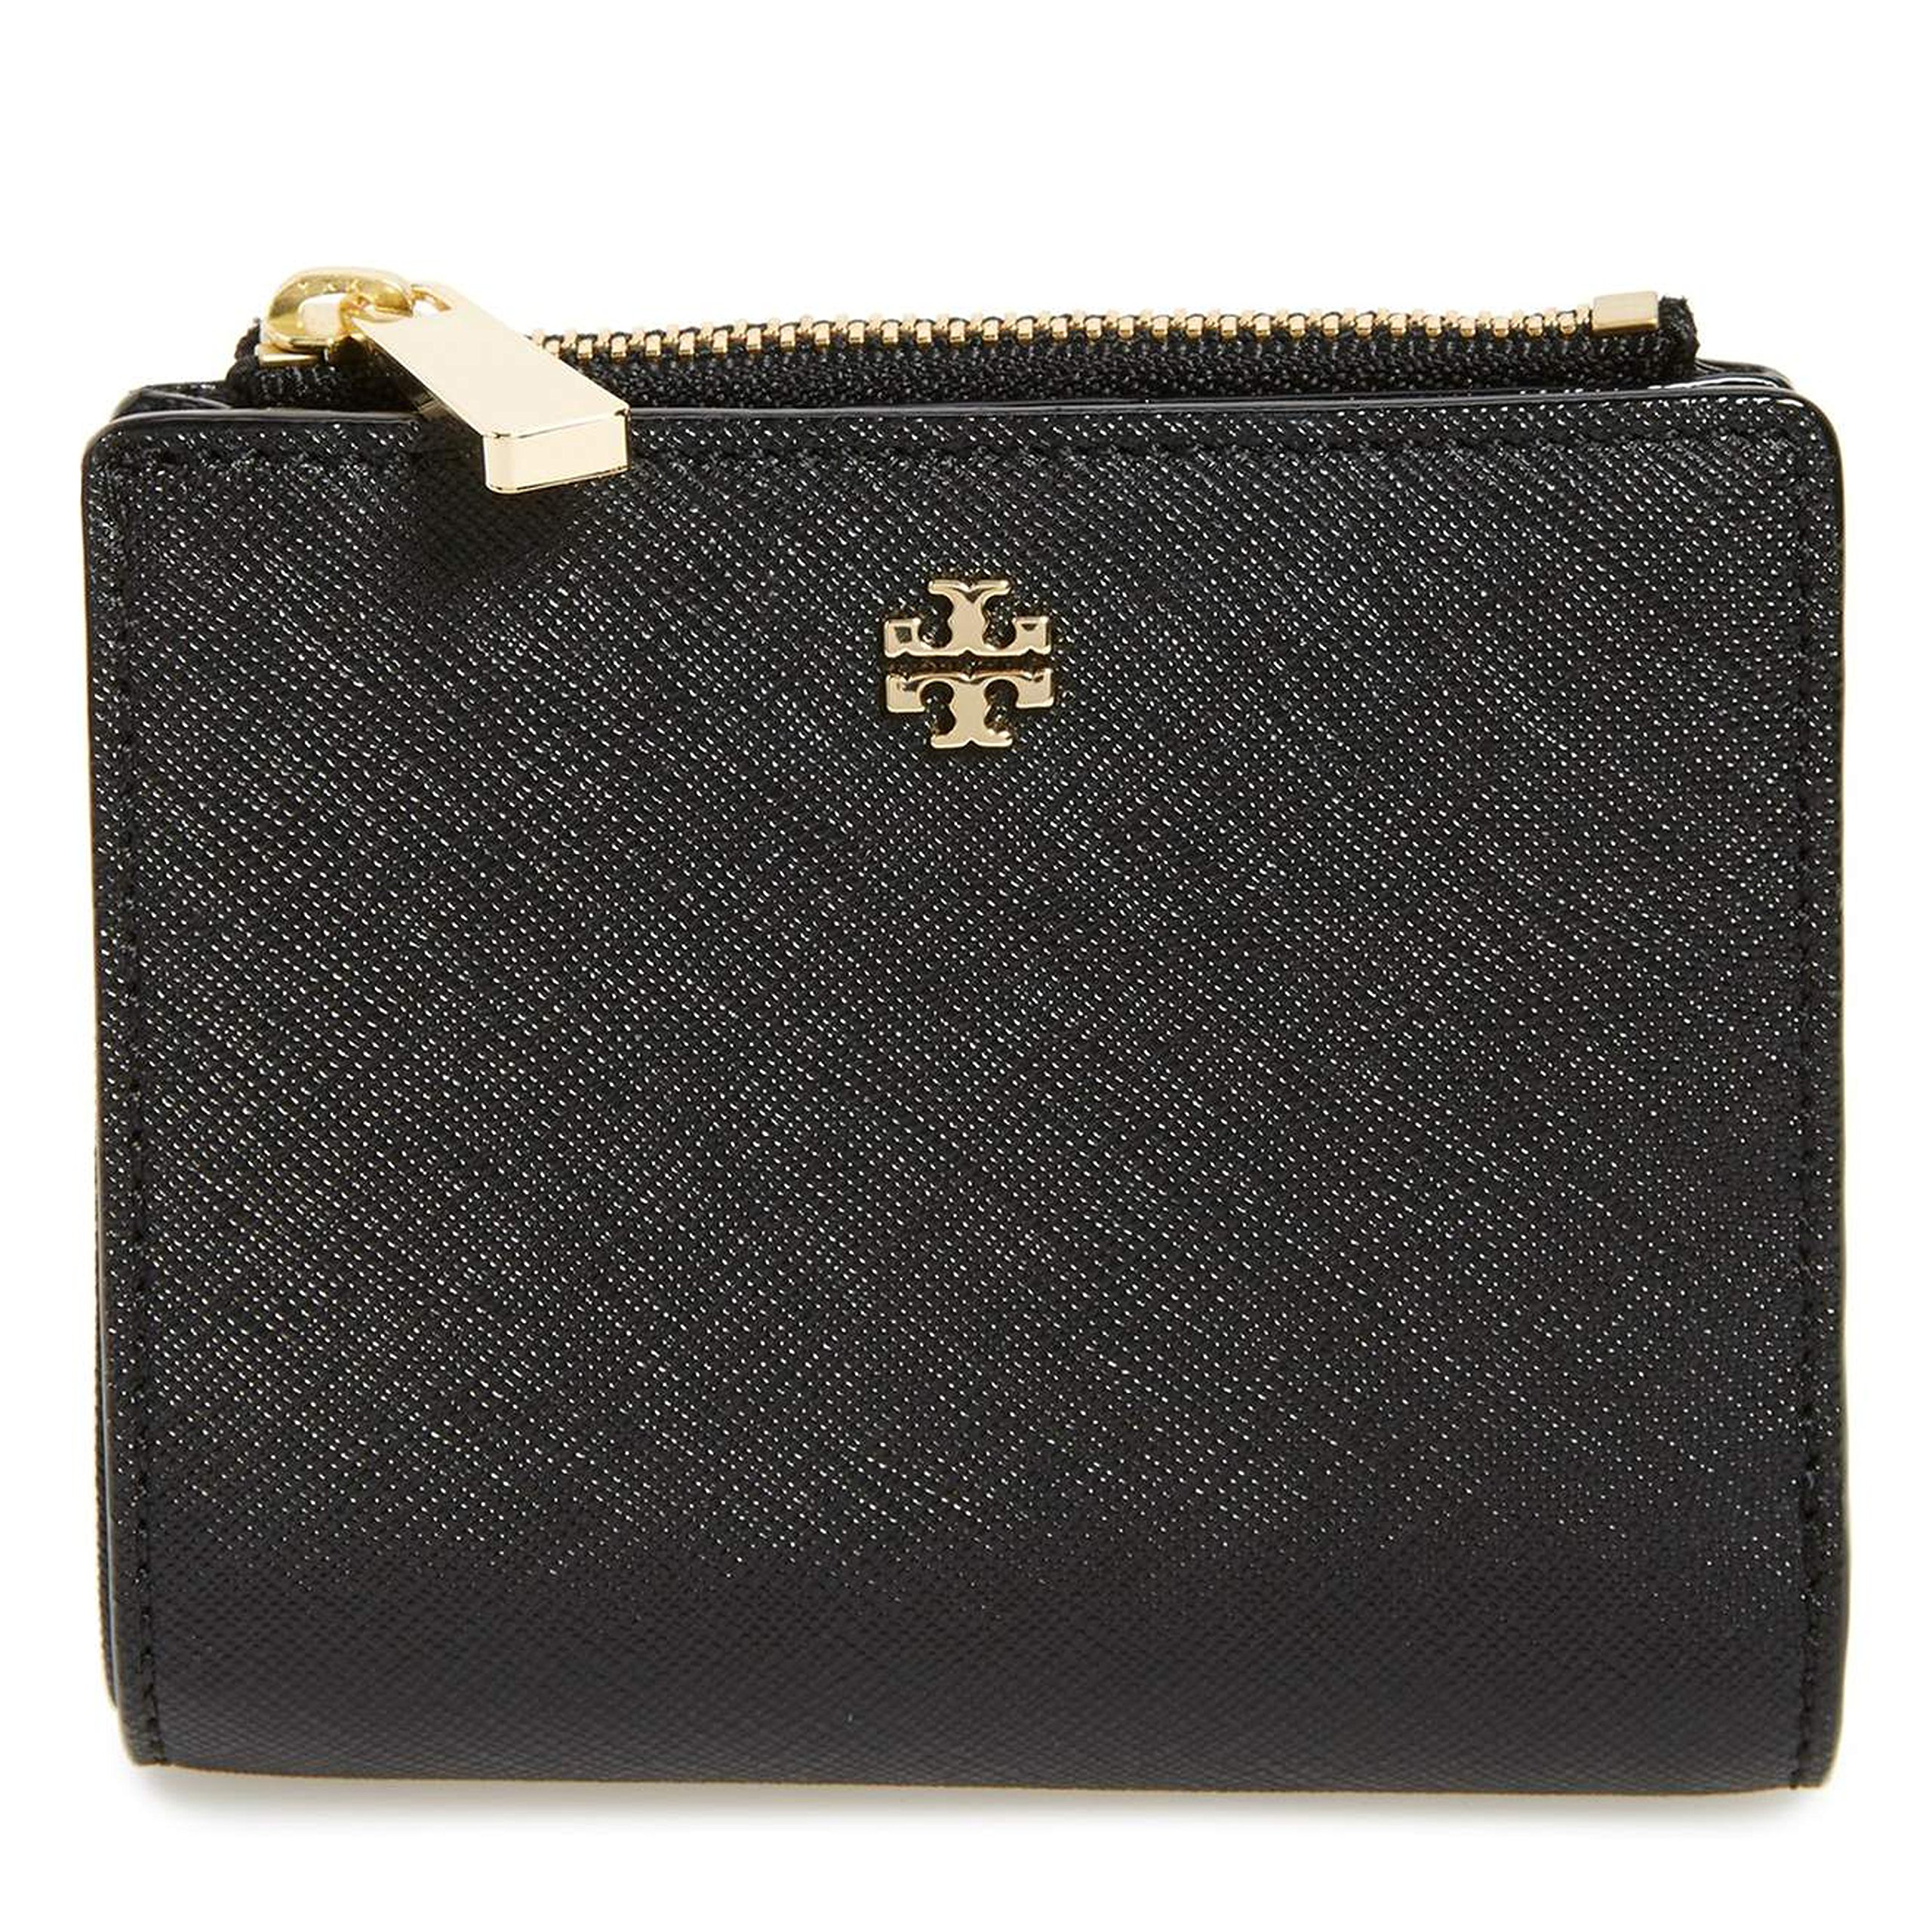 Tory Burch Robinson Mini Wallet Leather Coin Case Black by Tory Burch